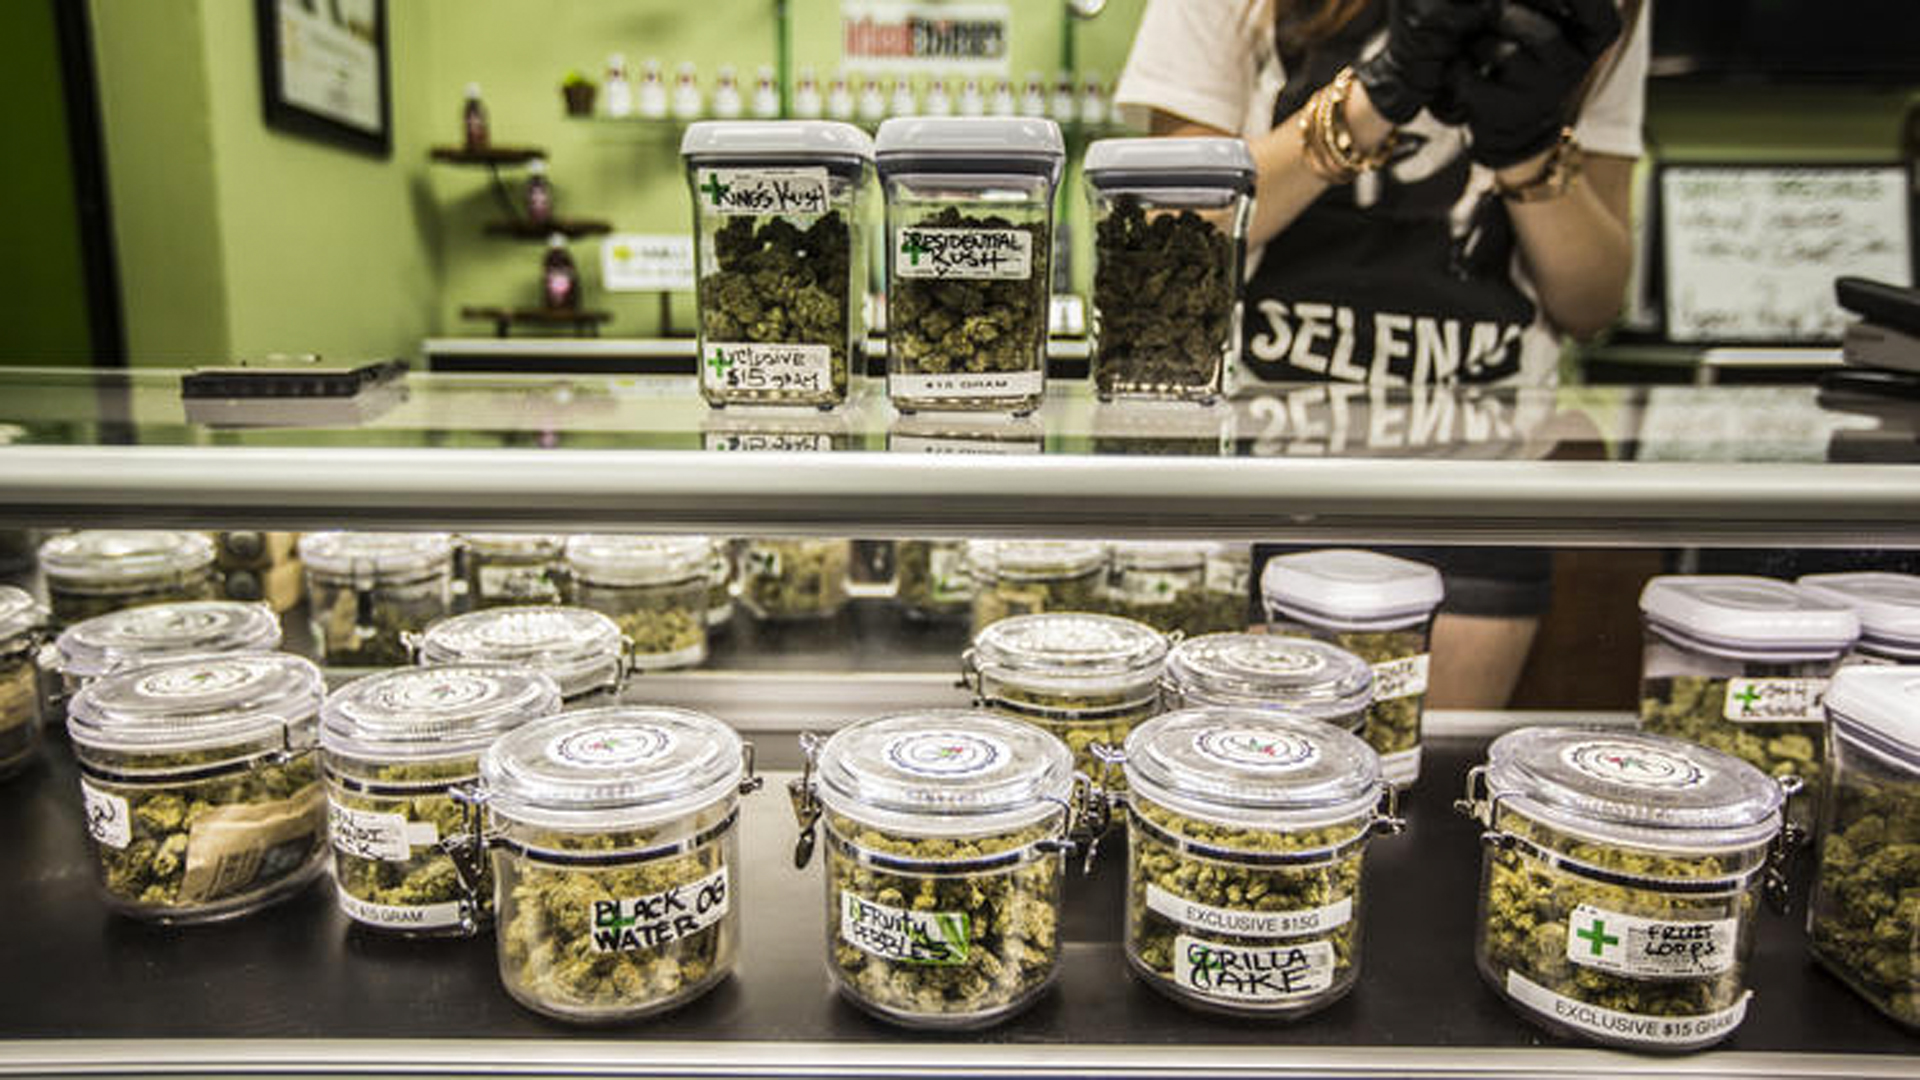 Cathedral City Collective Care in Riverside County got permission to begin selling pot at 12:01 a.m. on Jan. 1. (Credit: Maria Alejandra Cardona / Los Angeles Times)